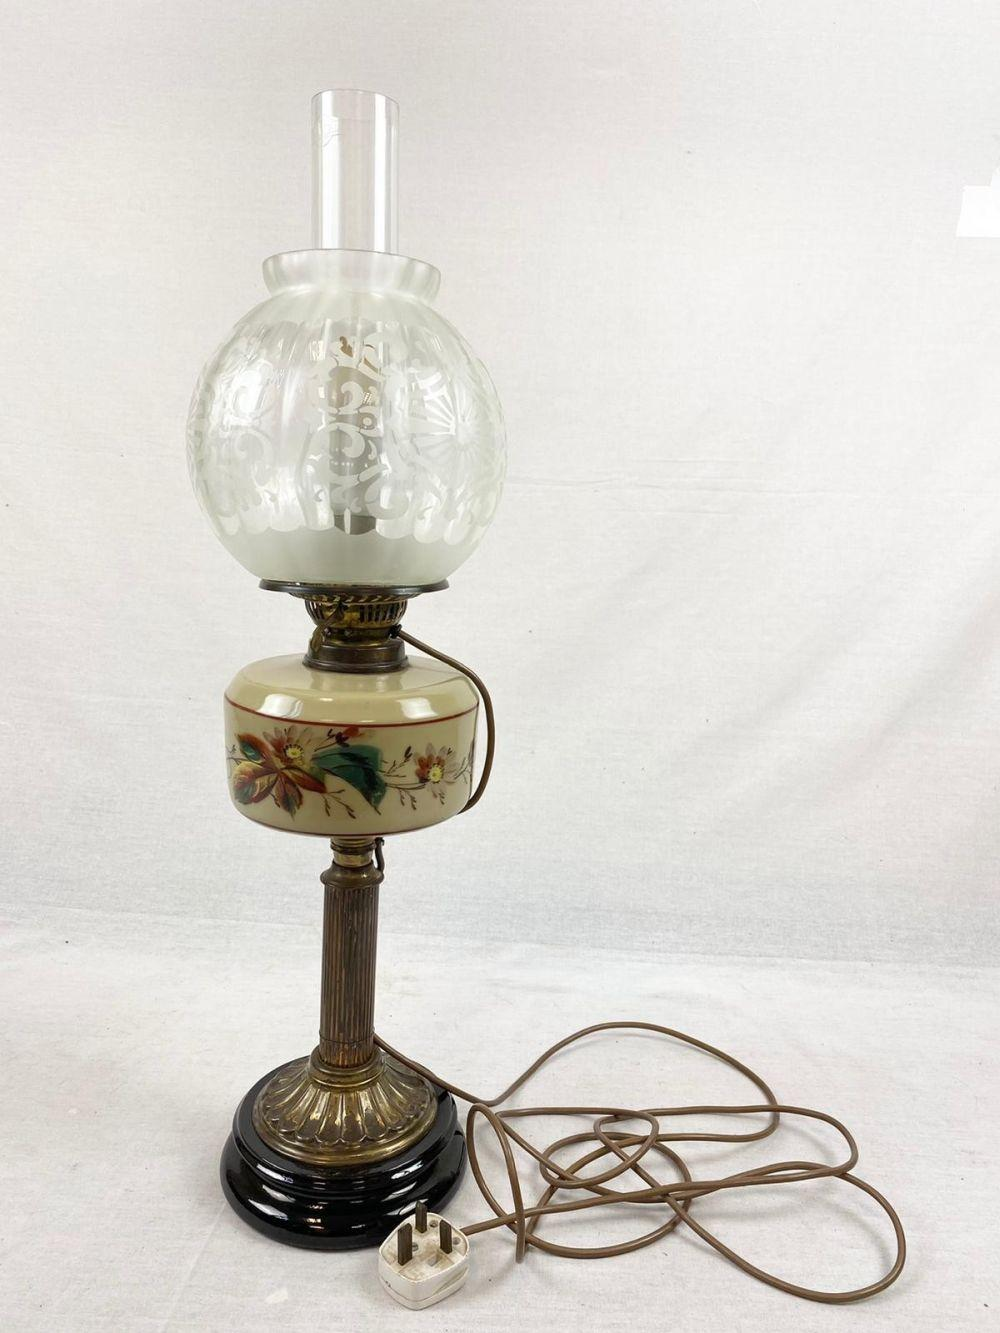 Victorian Milk Glass Oil Lamp Converted to Electric. Floral decorated chamber and milk glass sat above a brass central column. The globe is made of beautifully etched glass. In full working order. 68cm tall